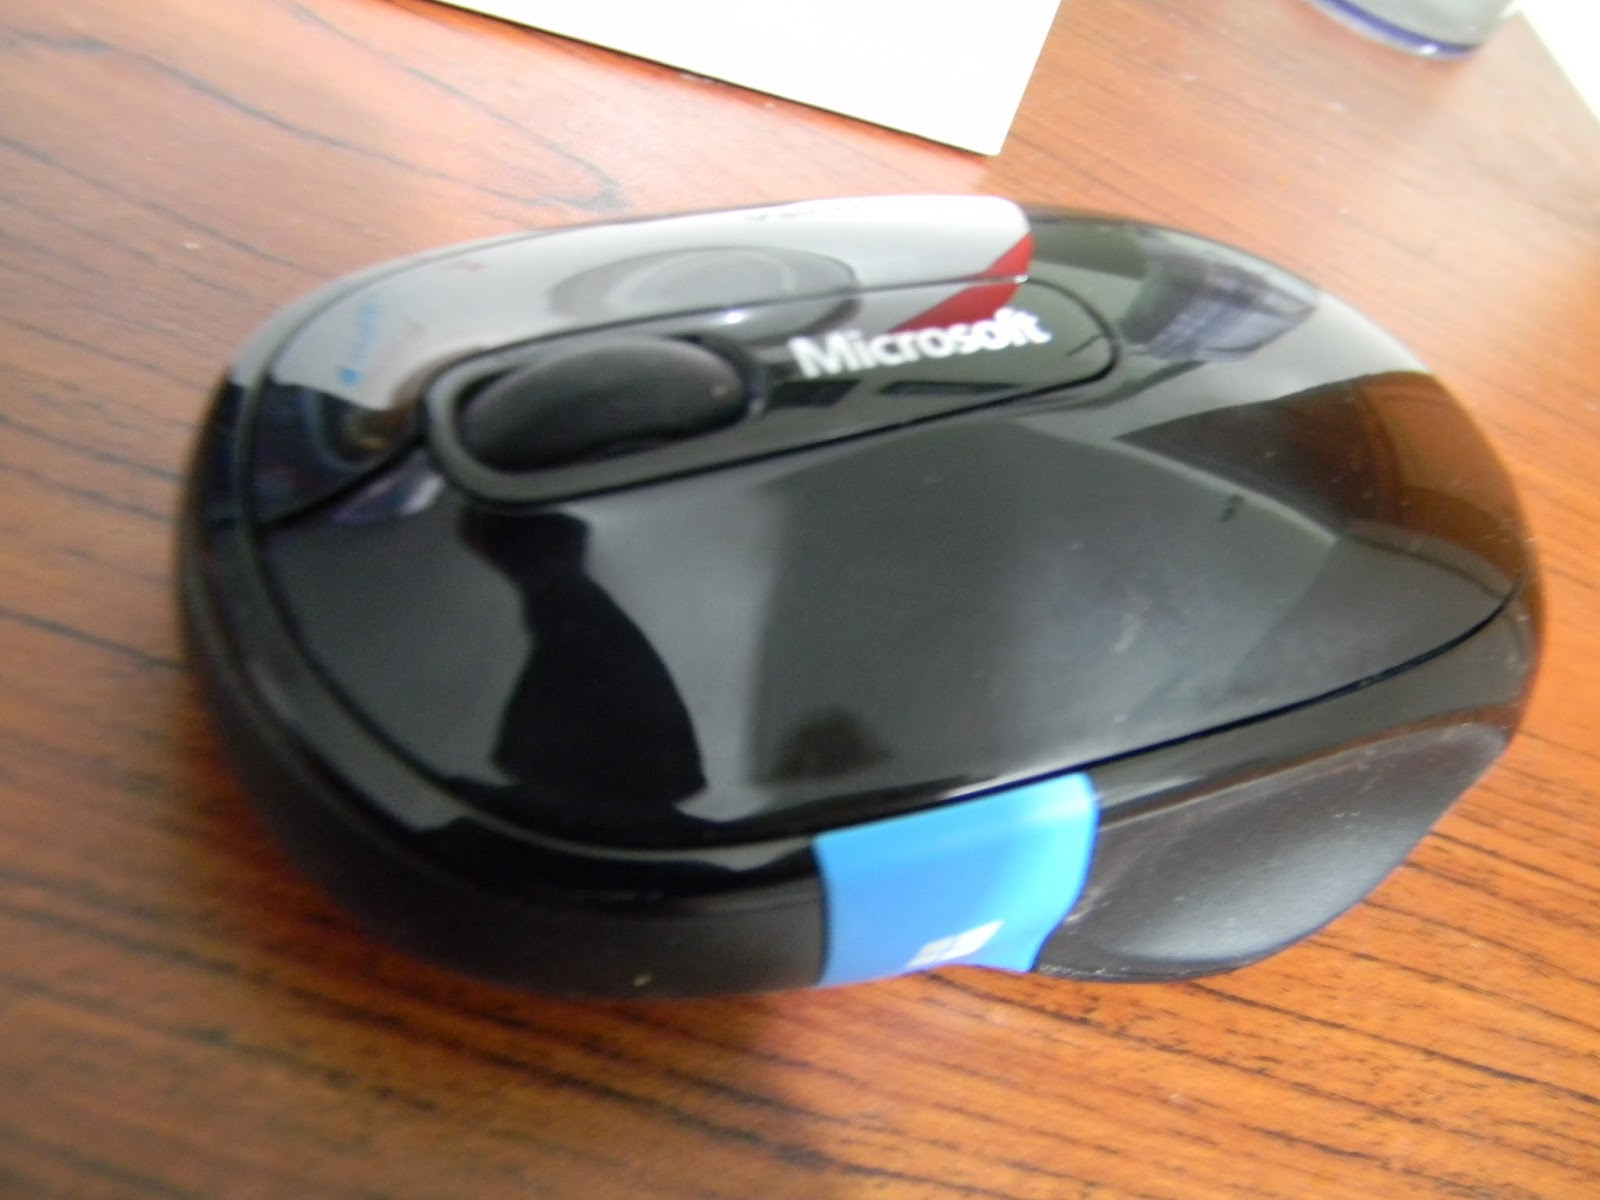 how to open a microsoft mouse battery